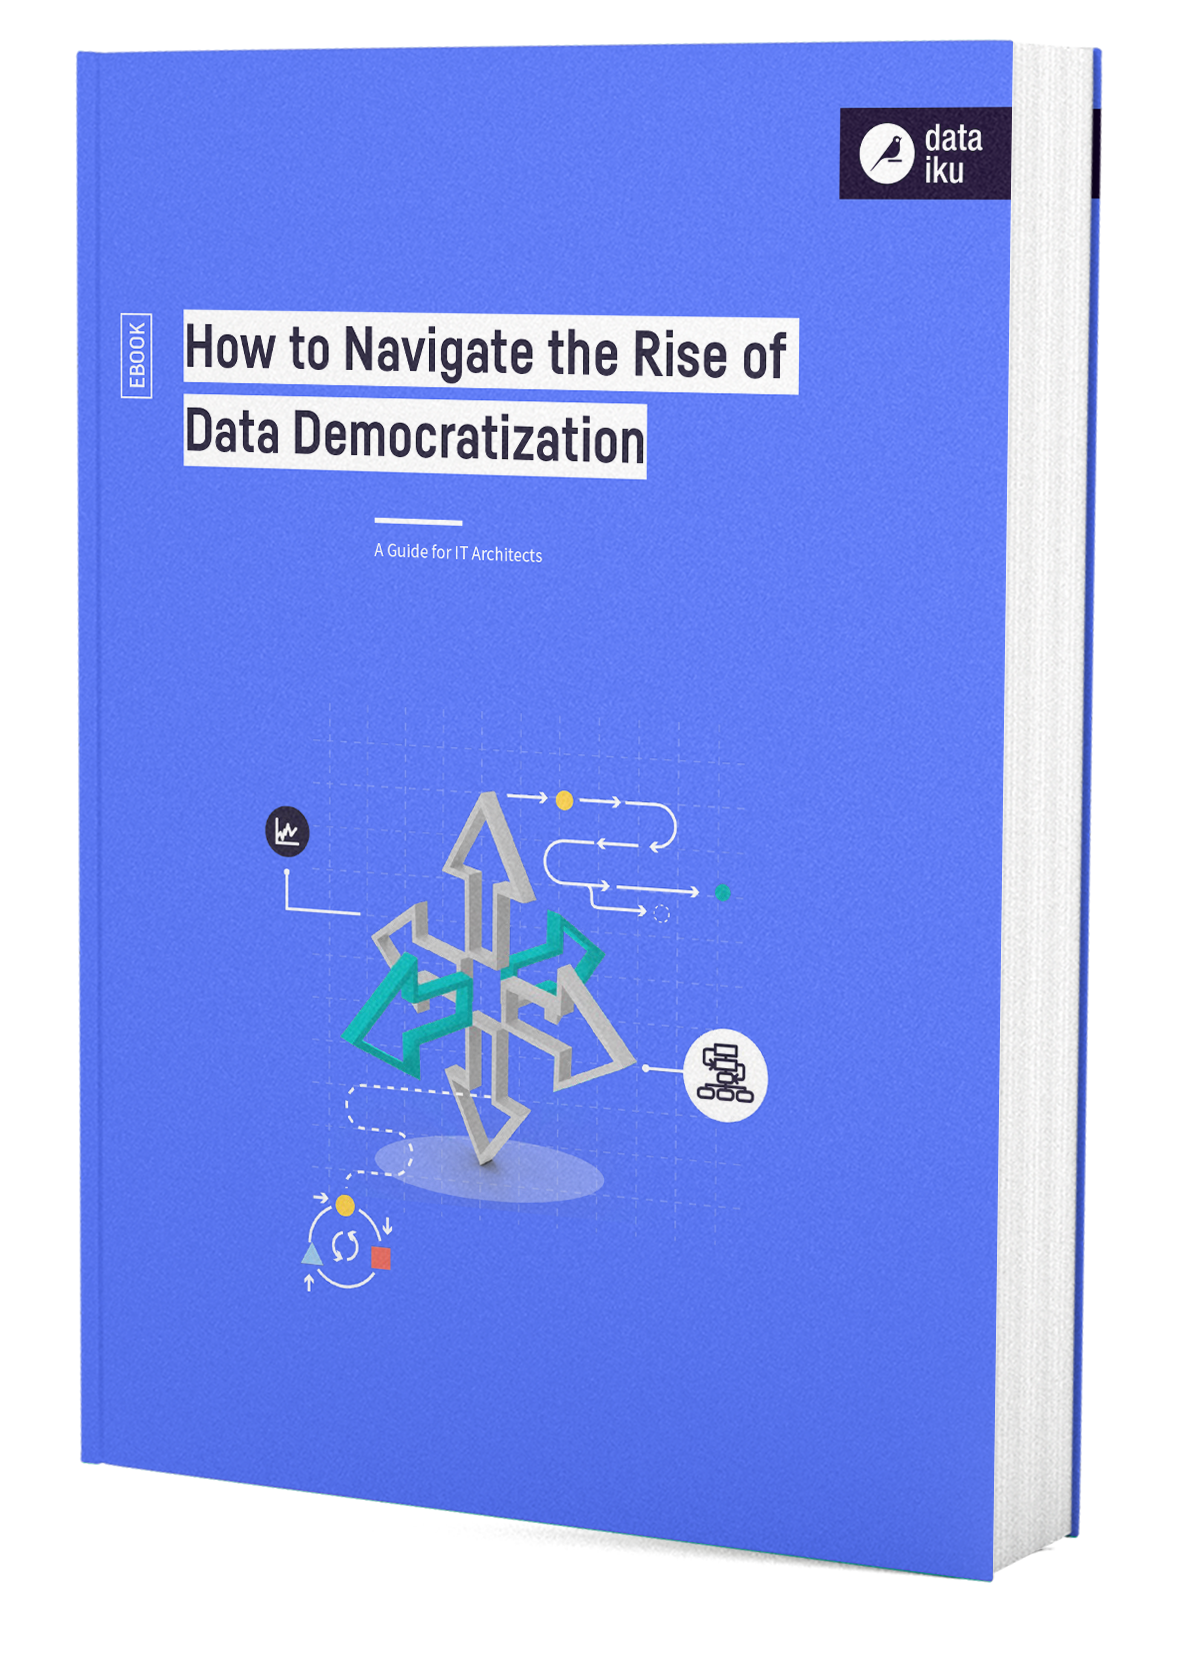 how-to-navigate-the-rise-of-data